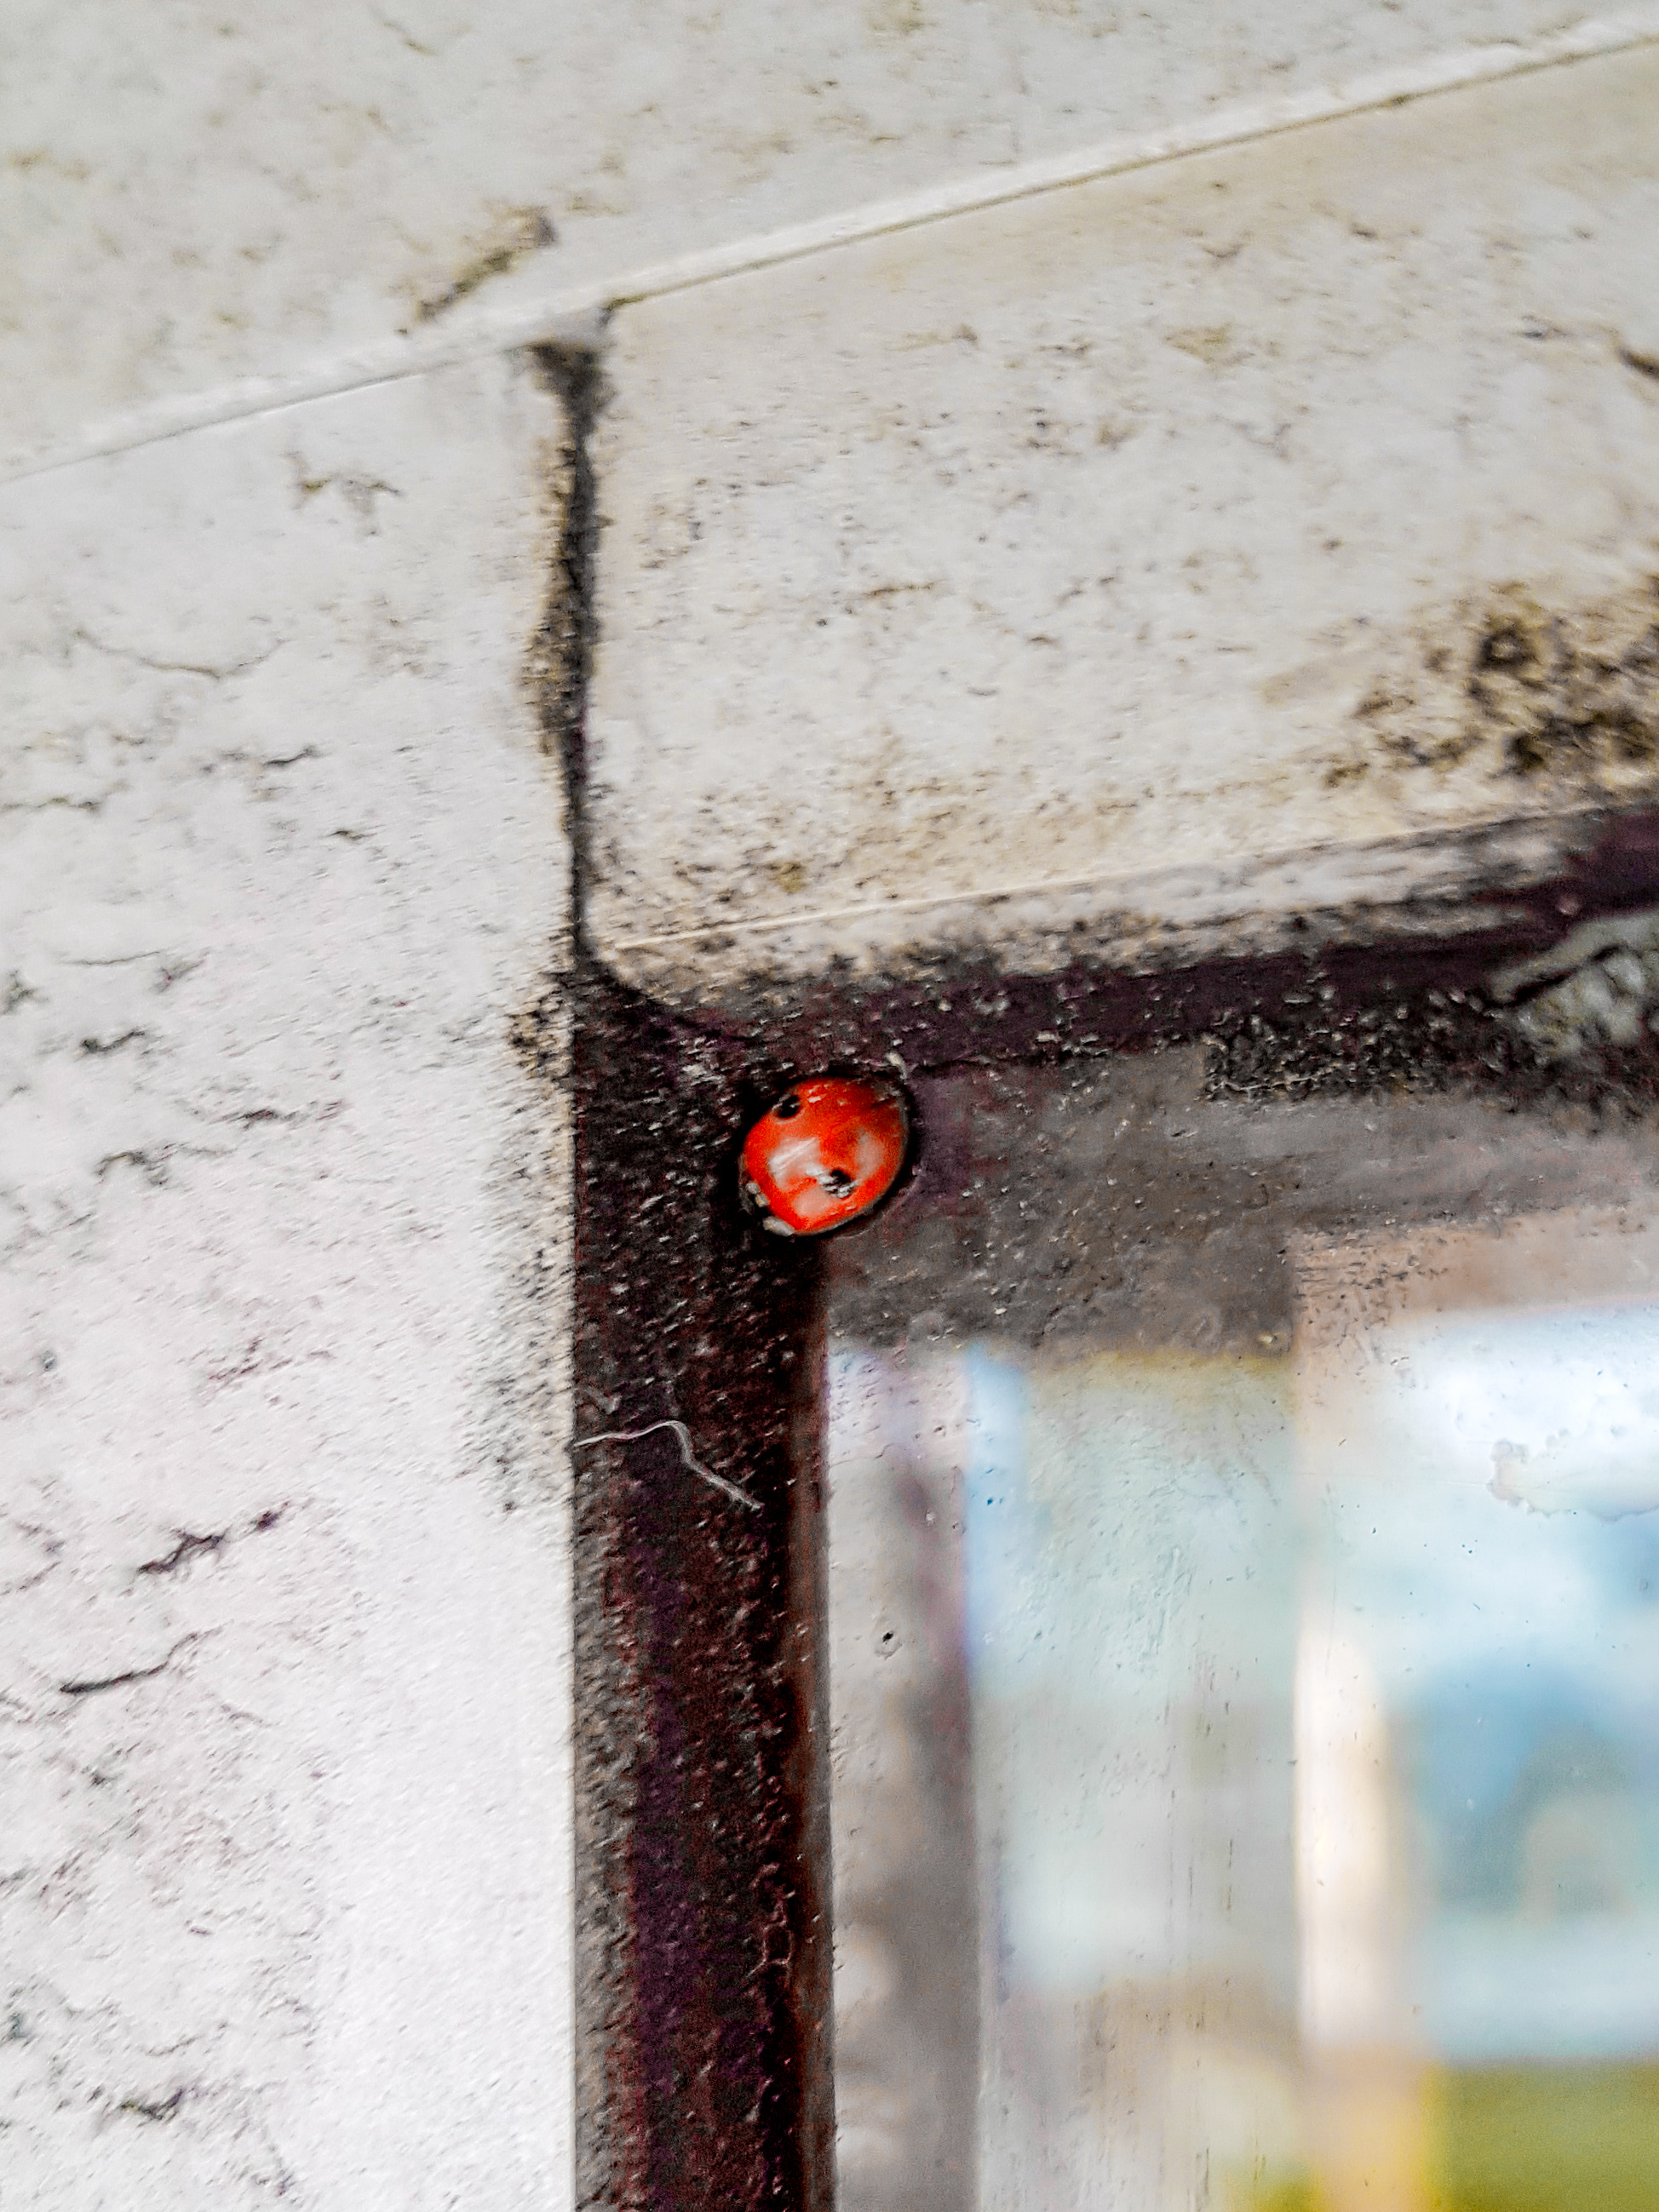 Signing off.....  - with this little ladybug snapped residing in the corner of an exterior window 7 floors high while Nick was abseiling last week.  Bye for now.